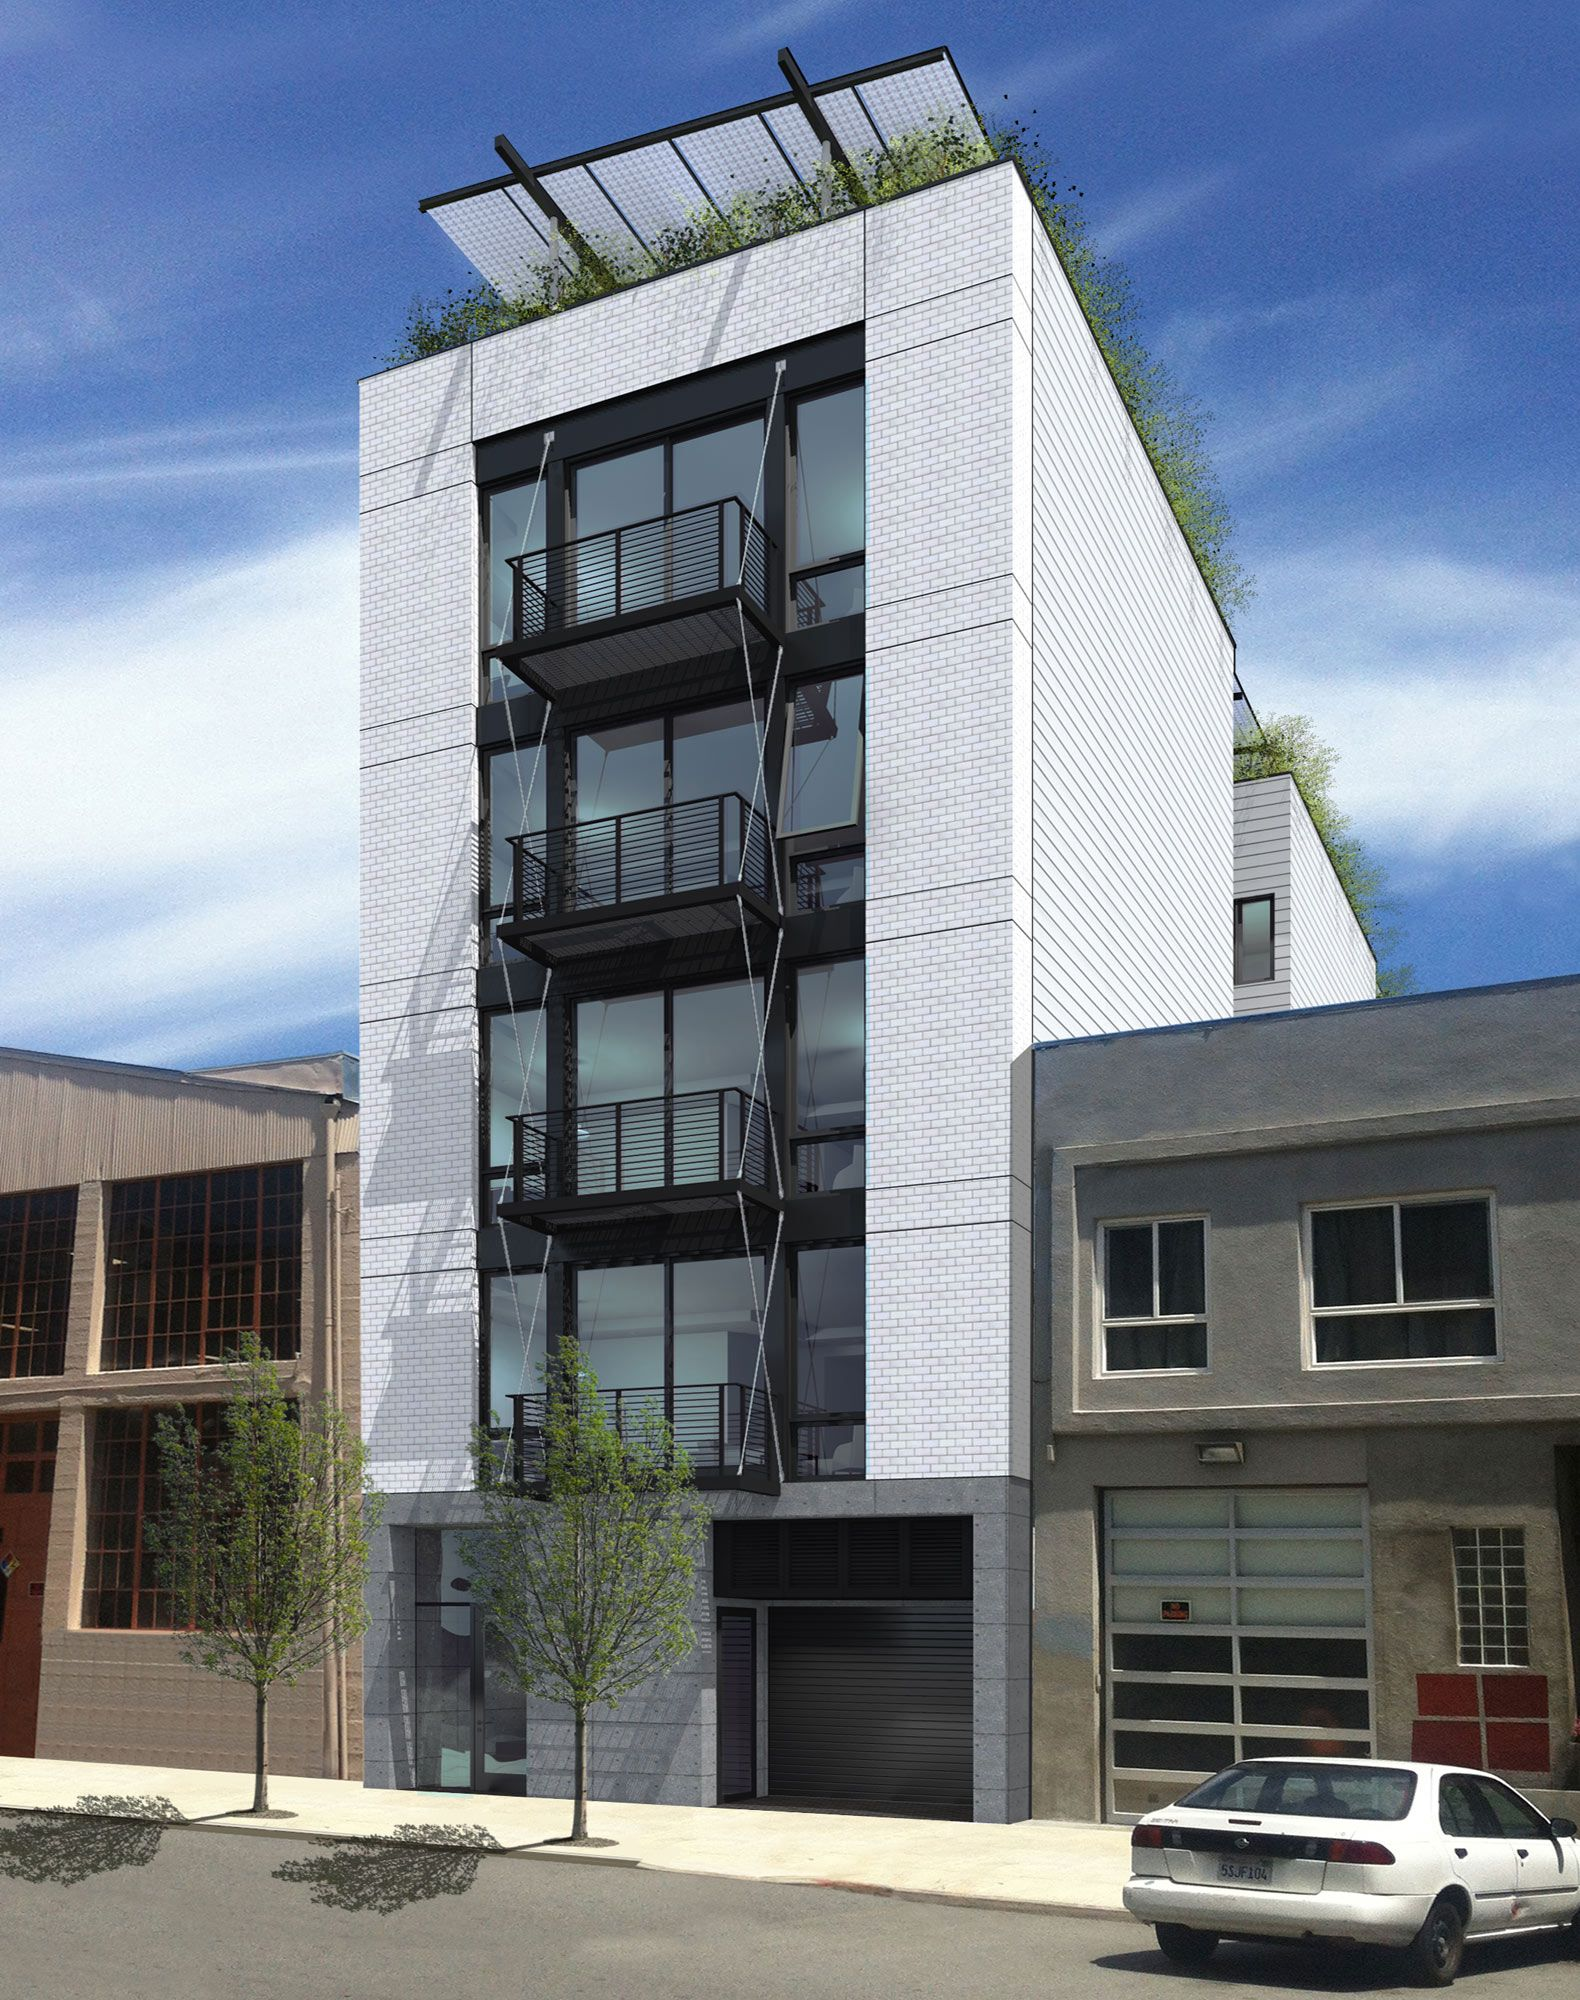 San francisco 39 s first passive house apartment complex for Apartment complex building plans